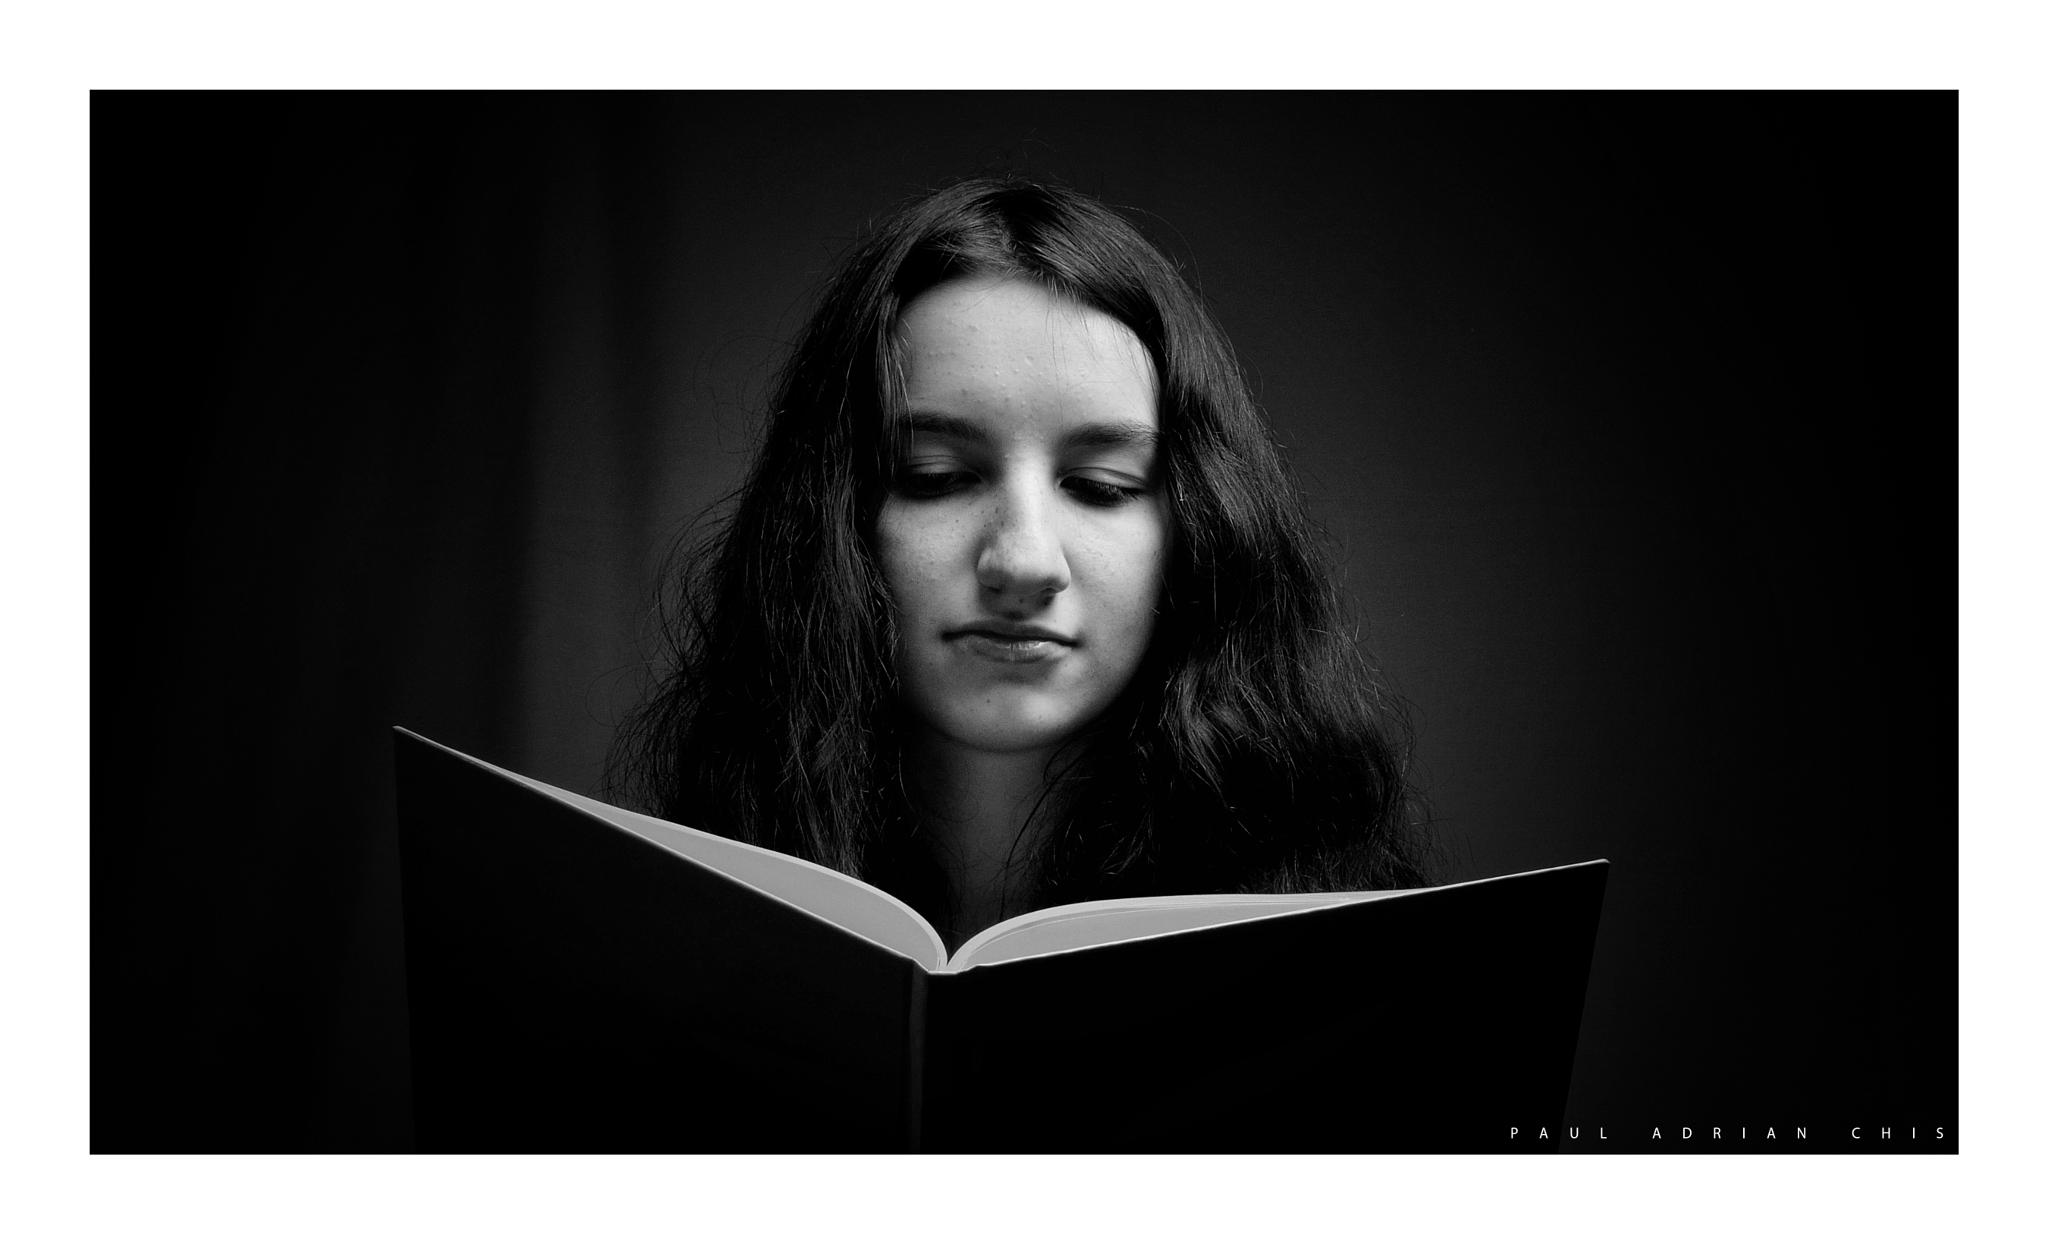 Young Reader by Paul Adrian Chis